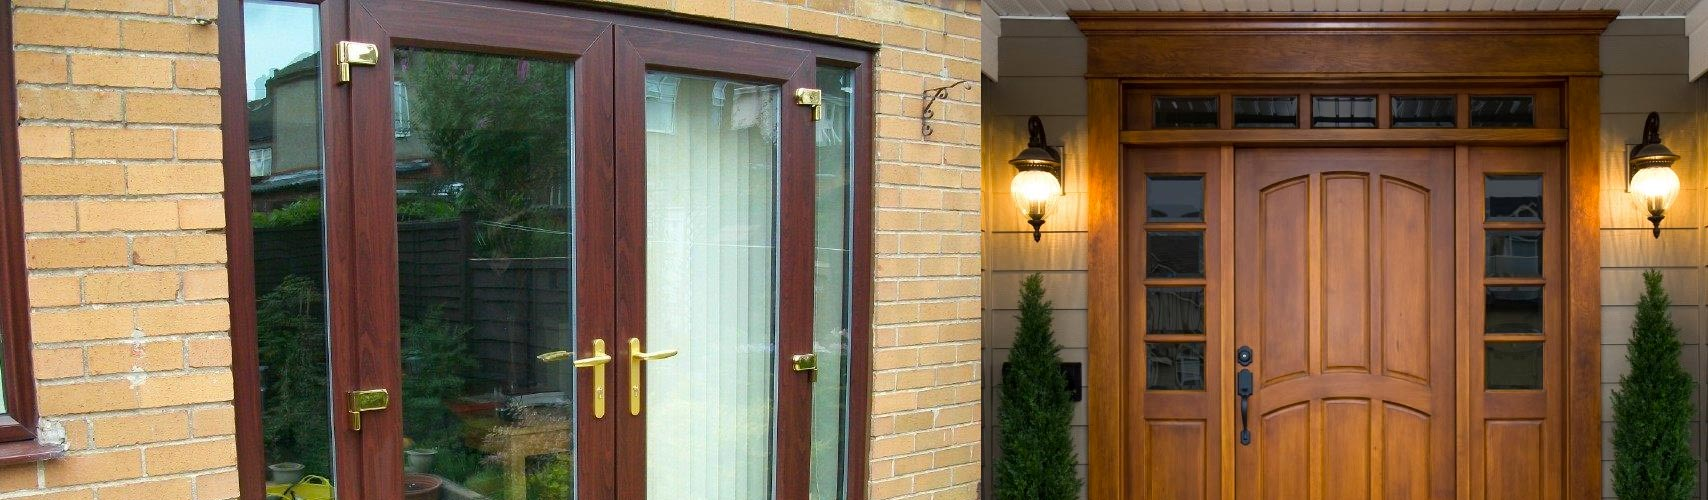 Composite Doors Vs uPVC Doors- Which Is Better For Your Home?